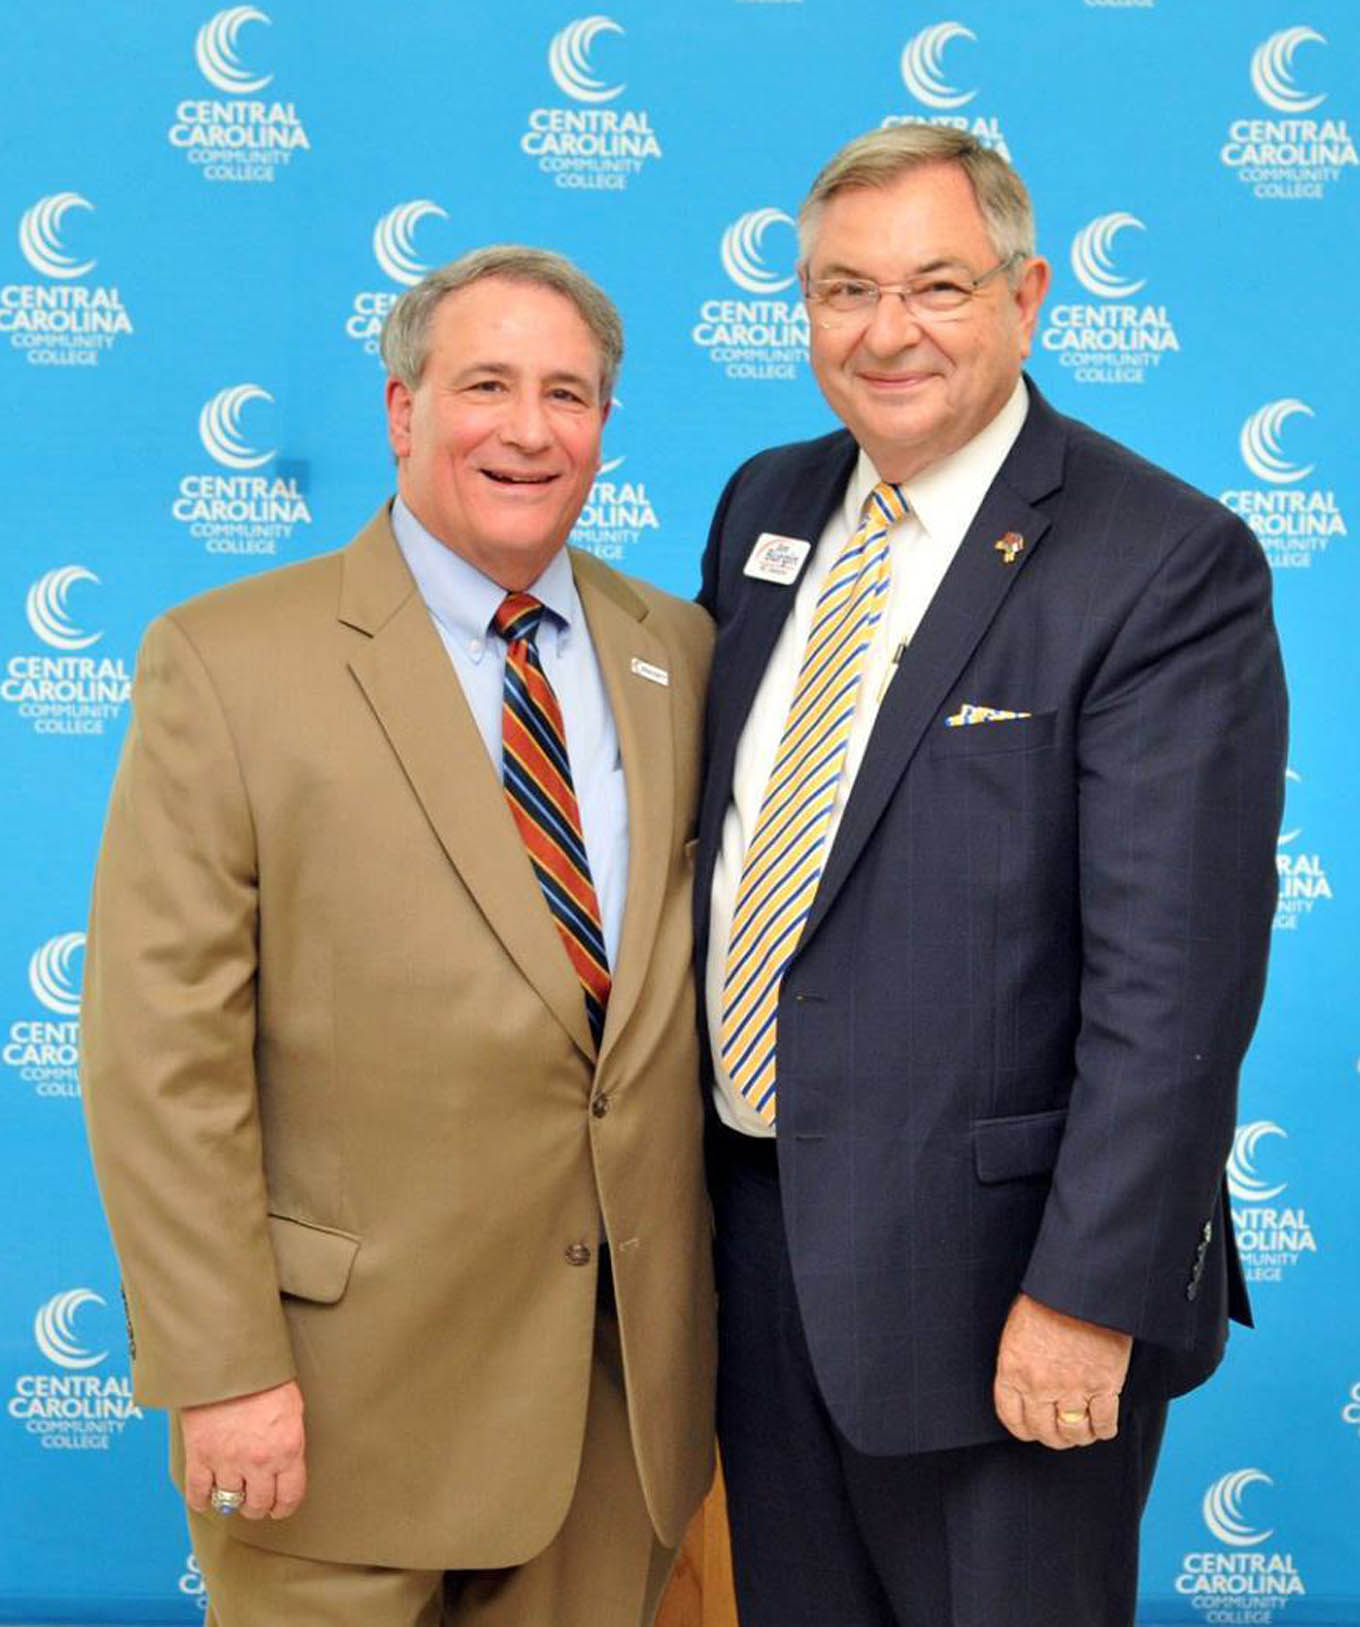 Read the full story, Philpott, Burgin reappointed to lead CCCC Trustees